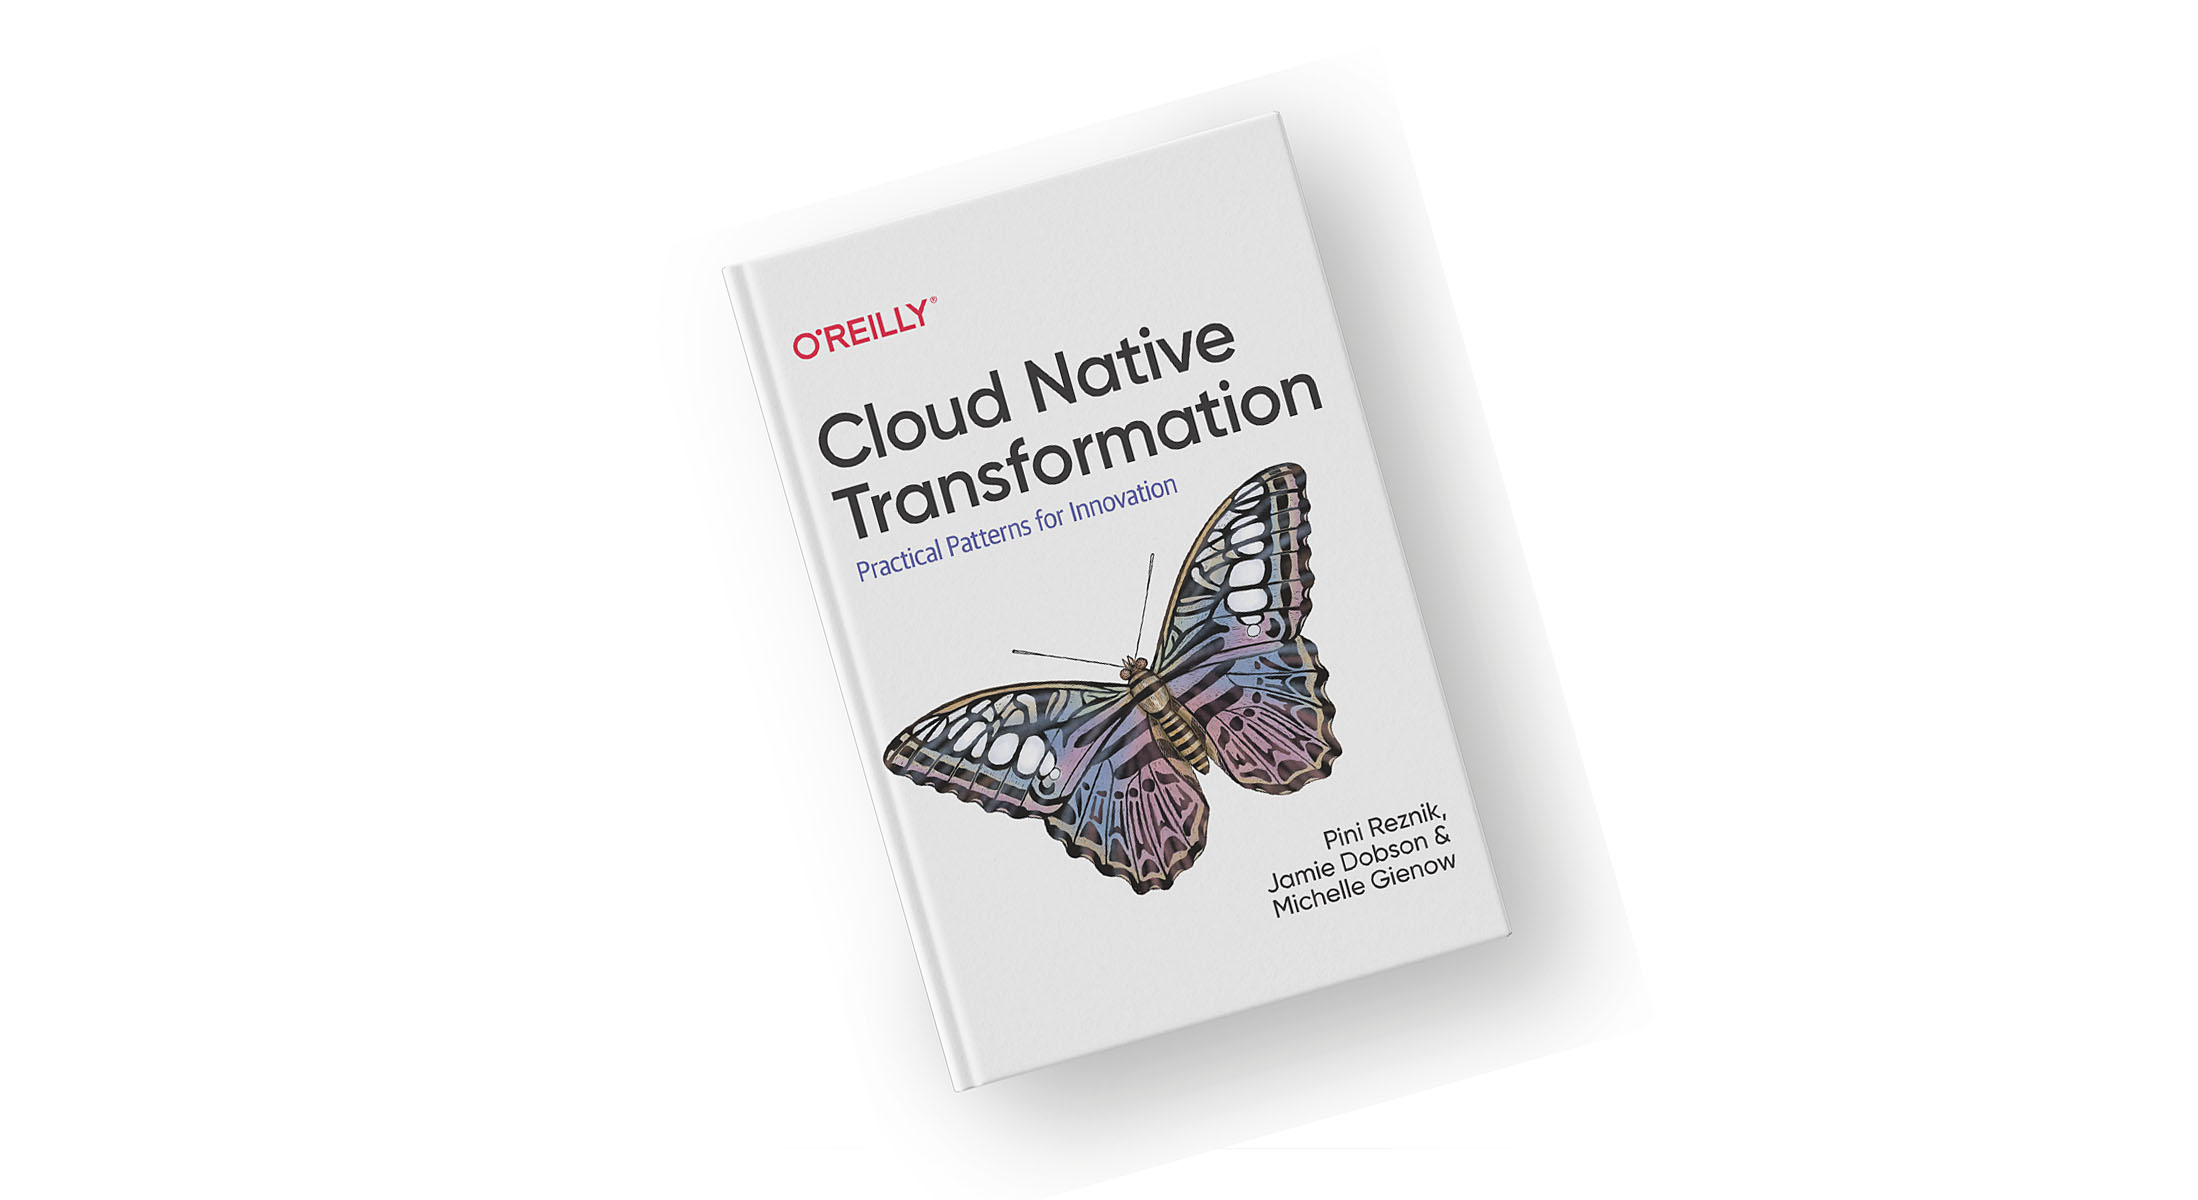 Cover of Cloud Native Transformation book.